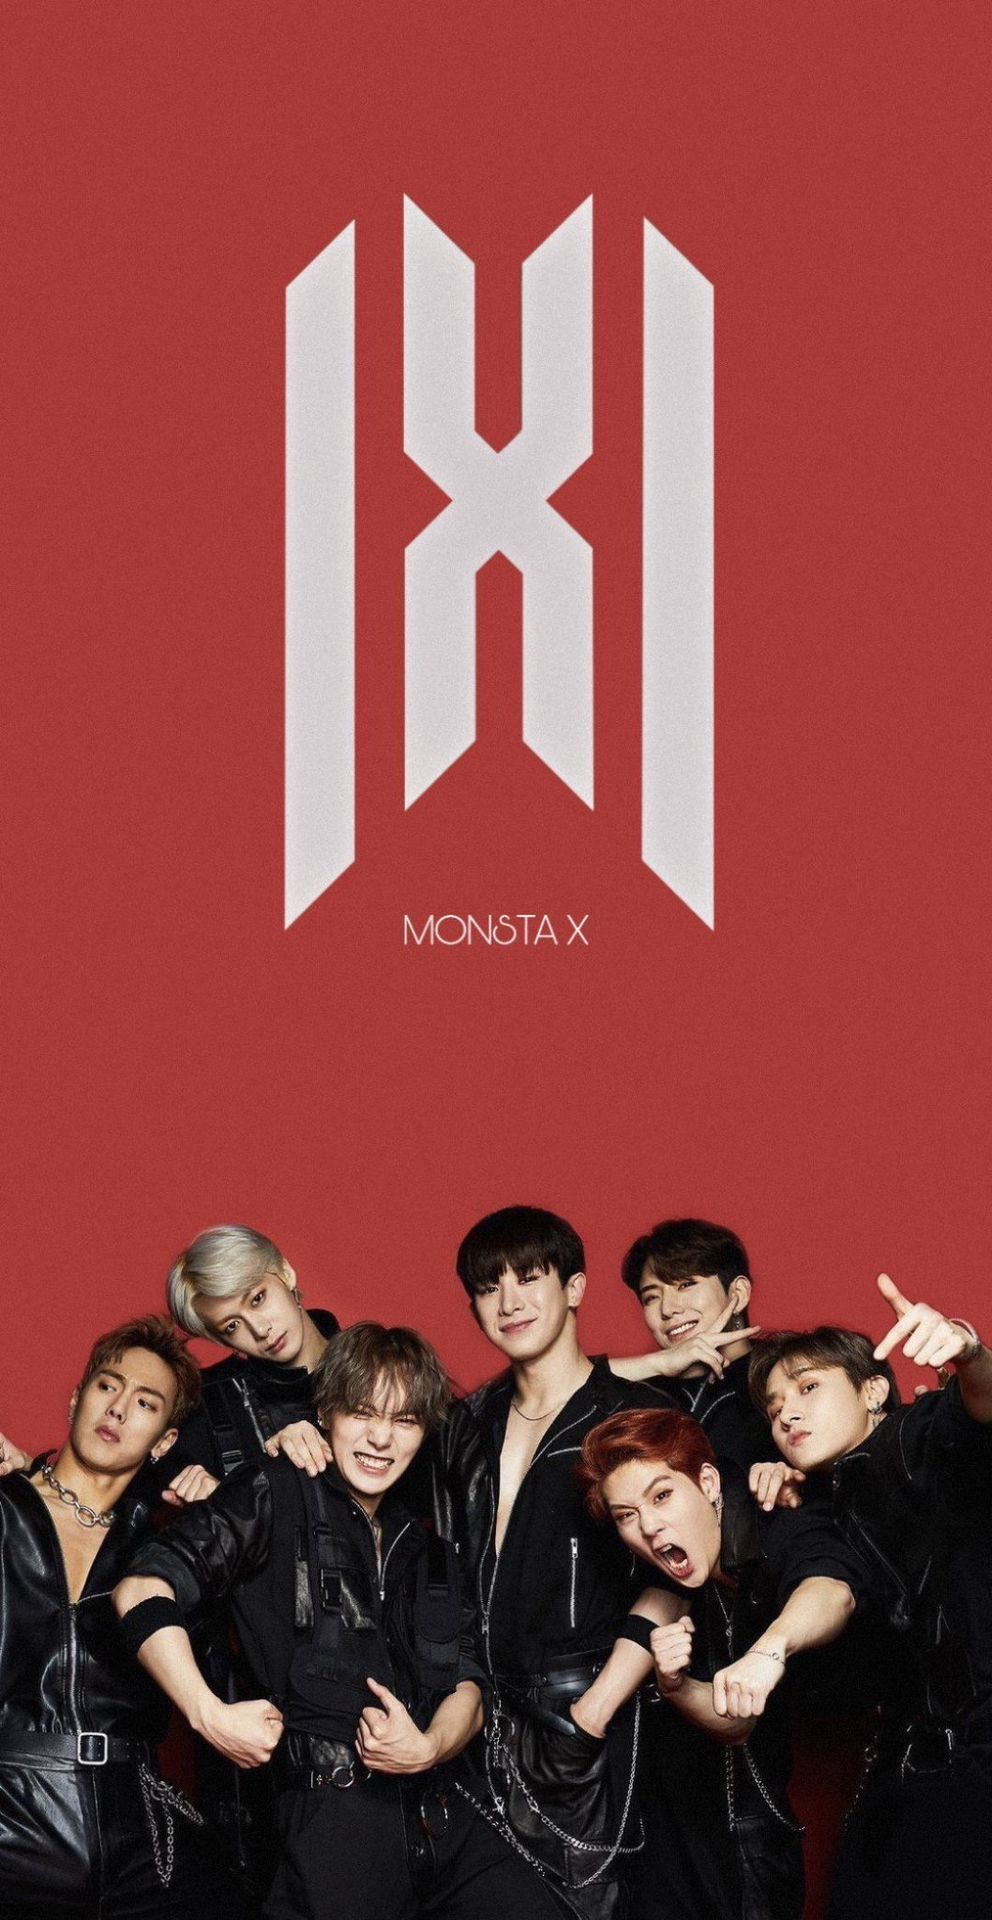 Monsta Reactions Fondo De Pantalla De Kpop Monsta X Fotos